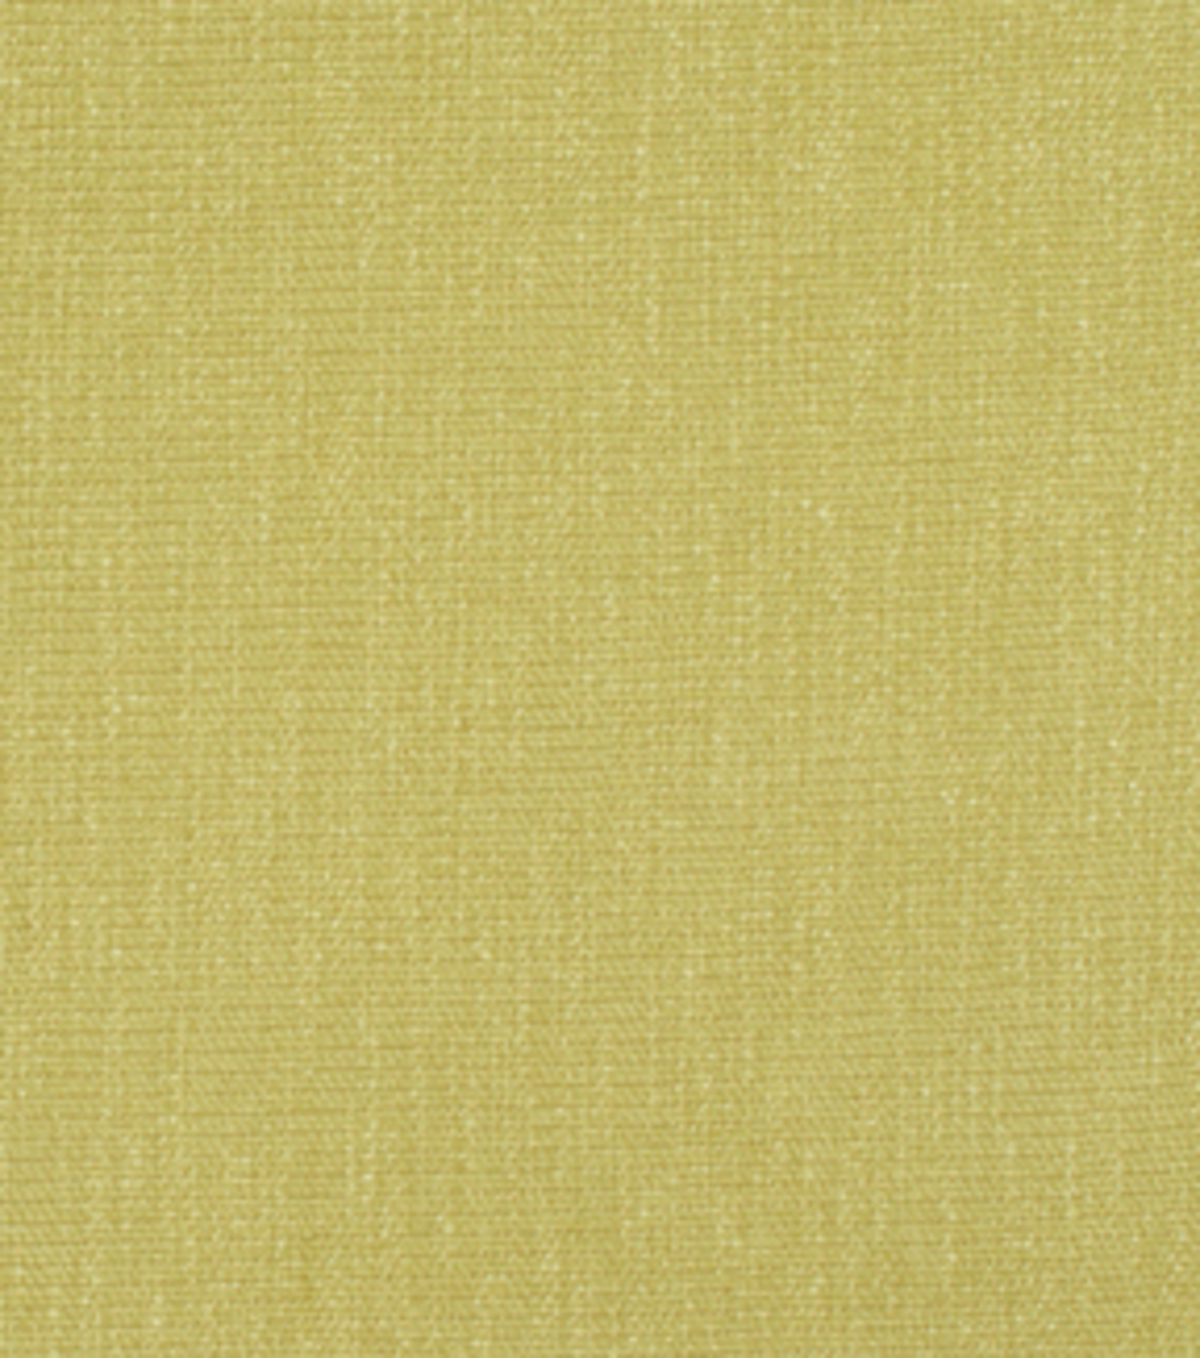 Home Decor 8\u0022x8\u0022 Fabric Swatch-Richloom Studio Hogan Celery